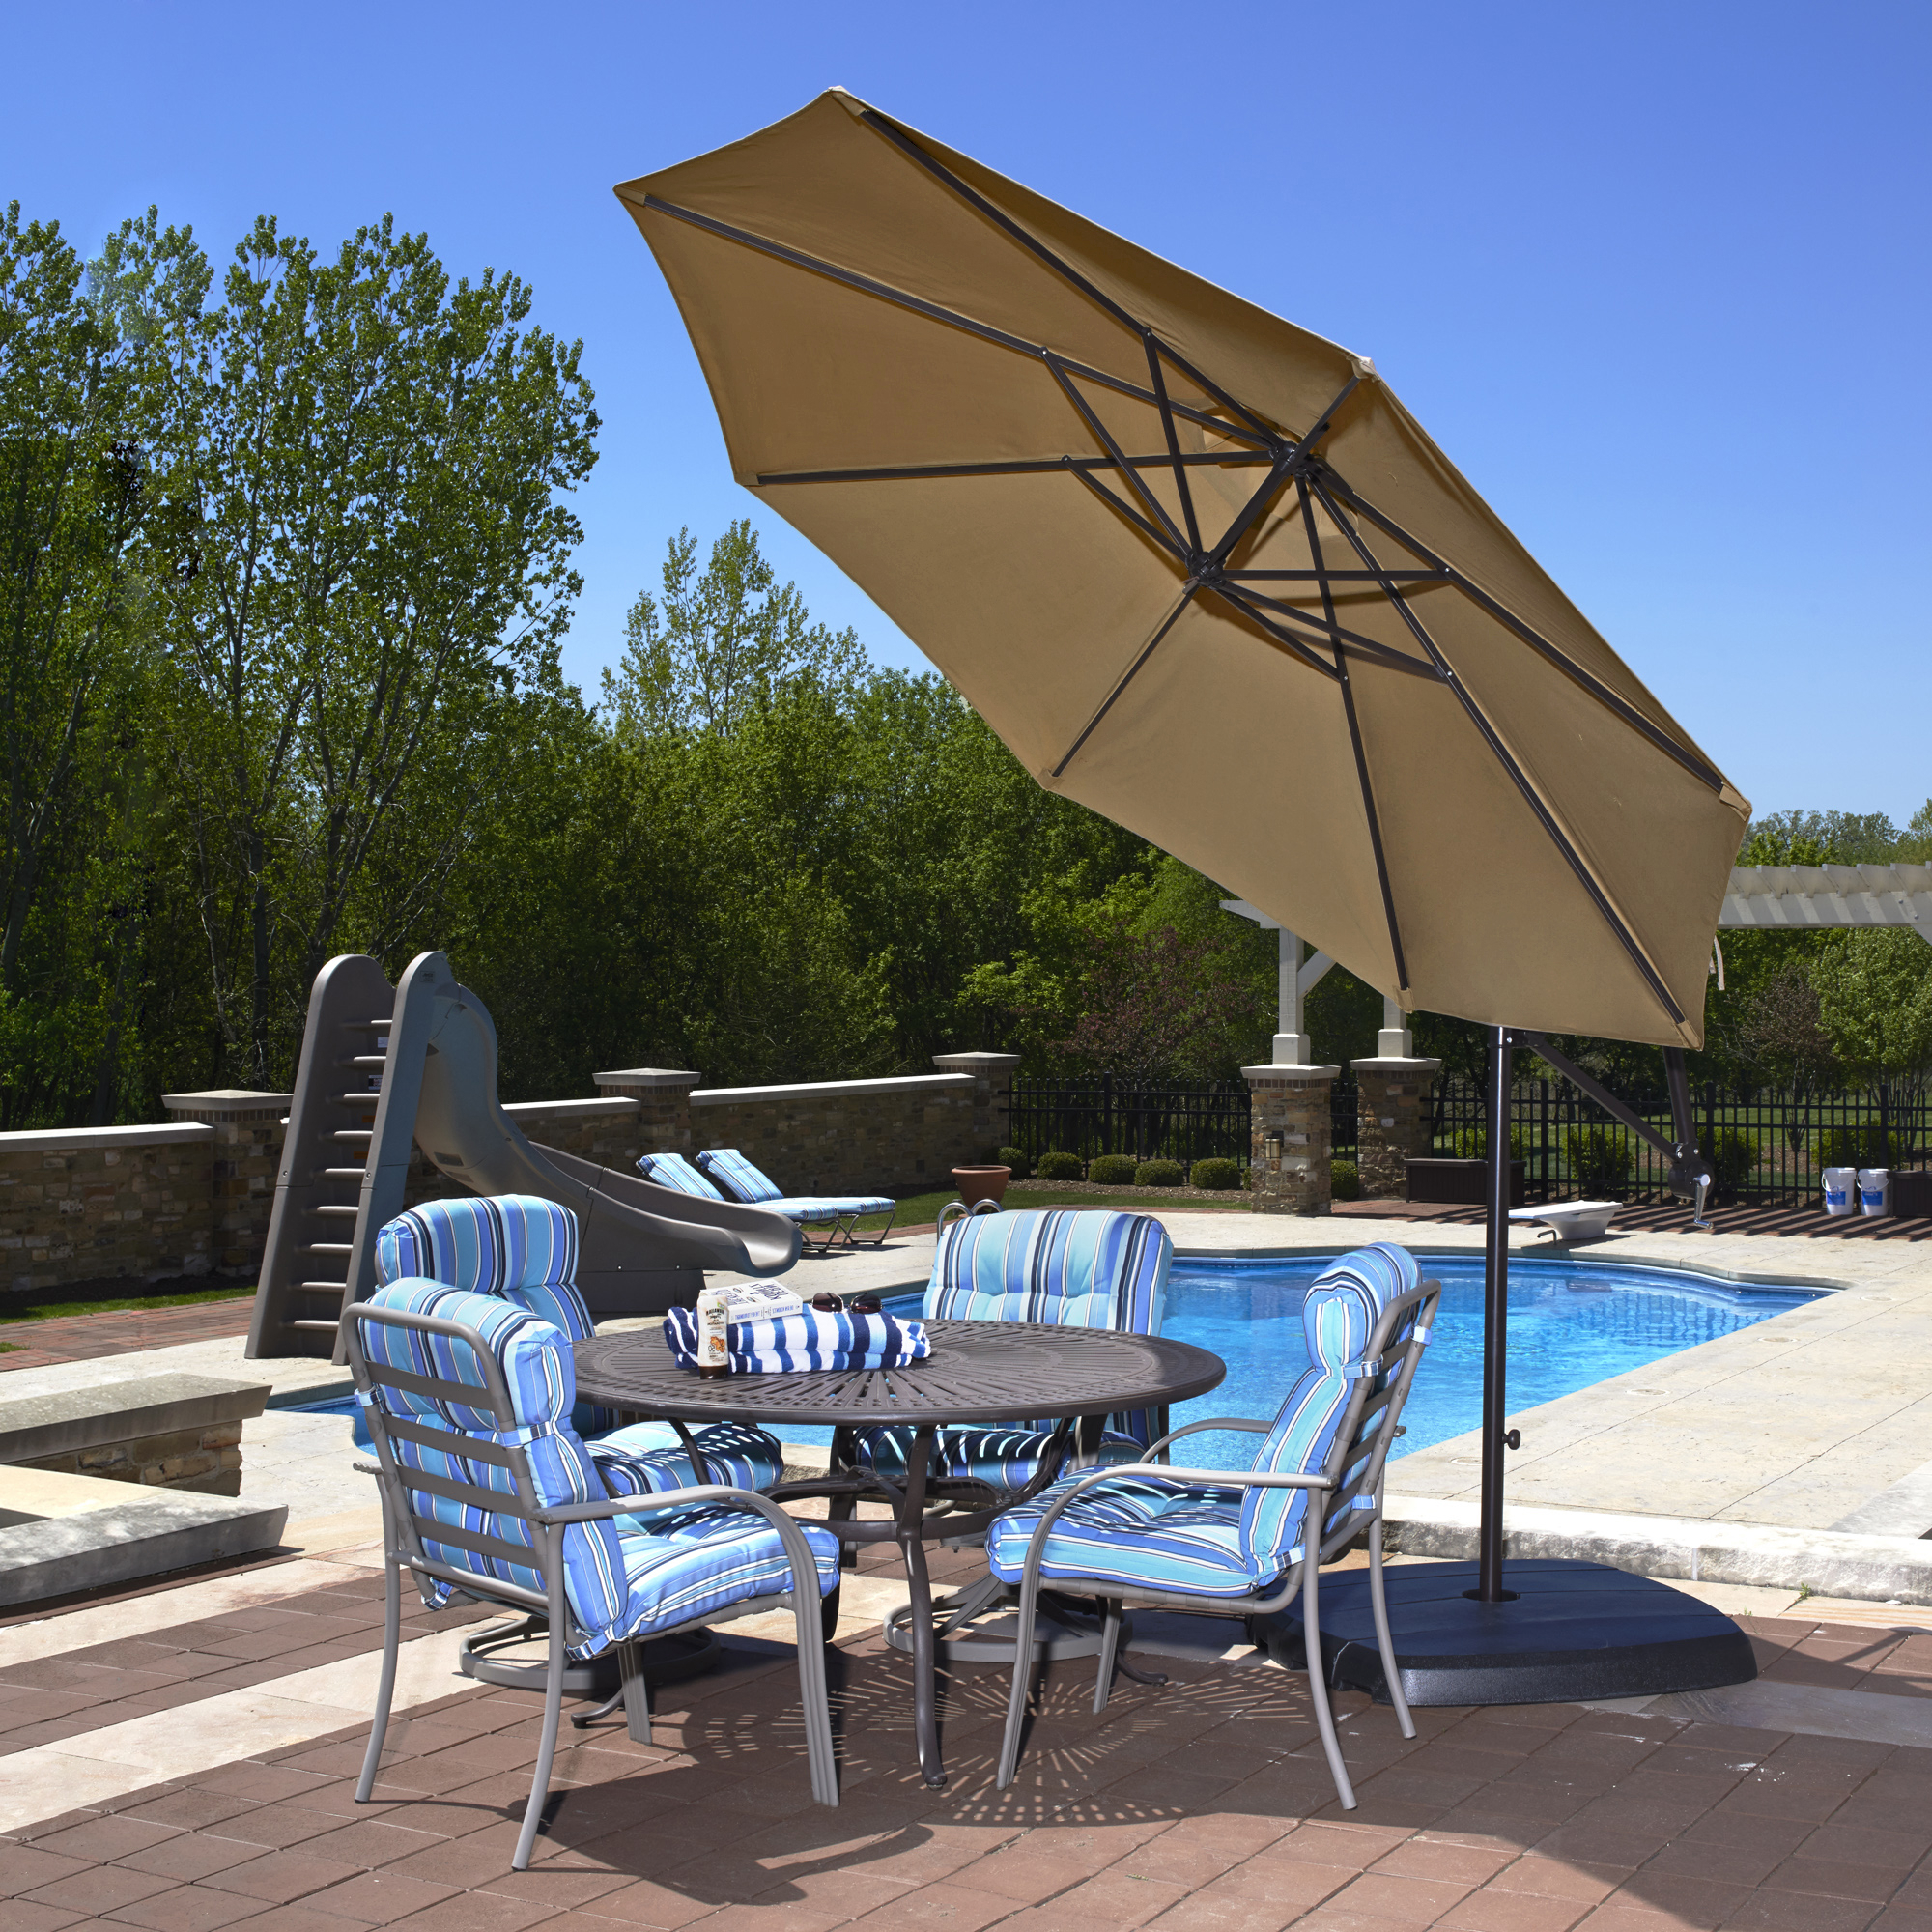 Island Umbrella Santiago 10 Ft Octagonal Cantilever Umbrella In Stone Olefin For Most Popular Cantilever Umbrellas (View 10 of 20)